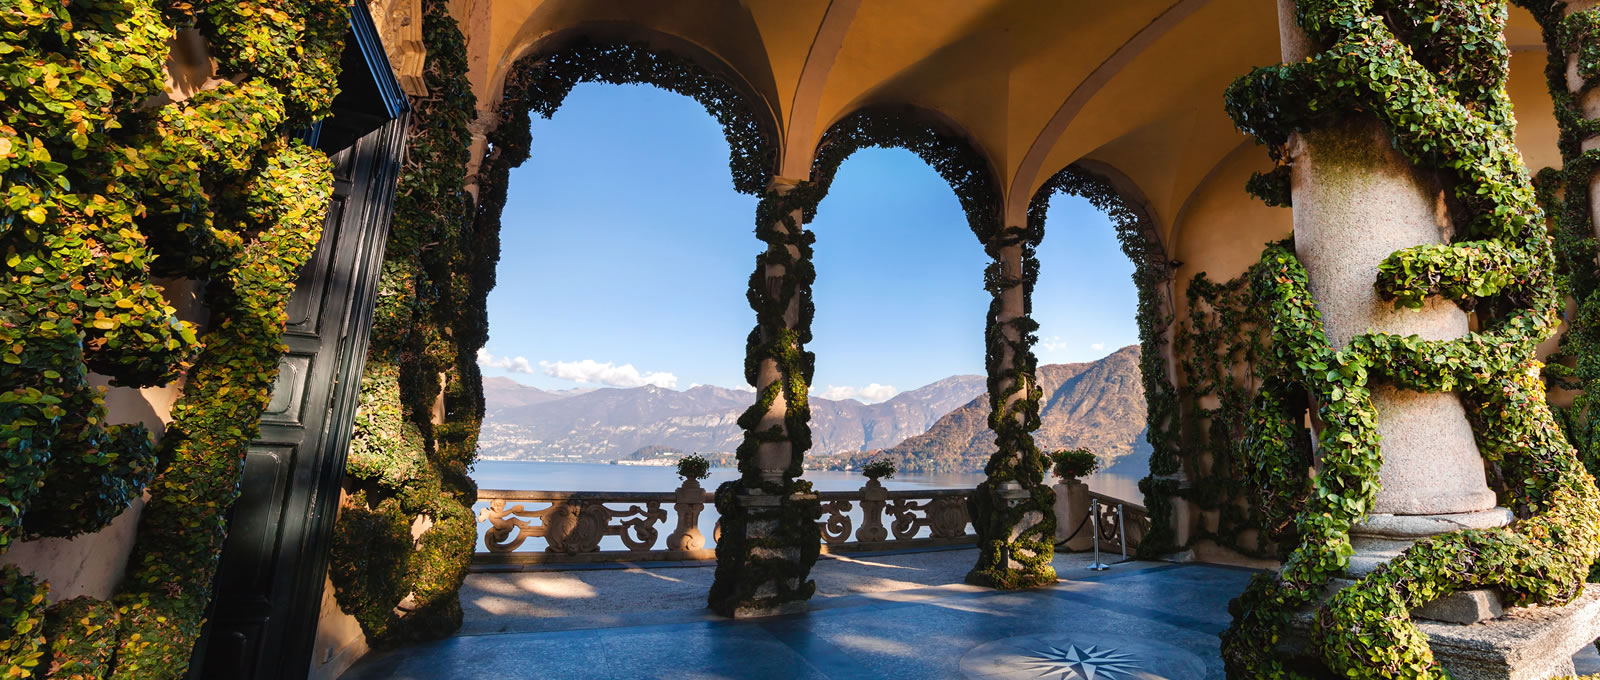 The Historic Villas on Lake Como and their Splendid Gardens